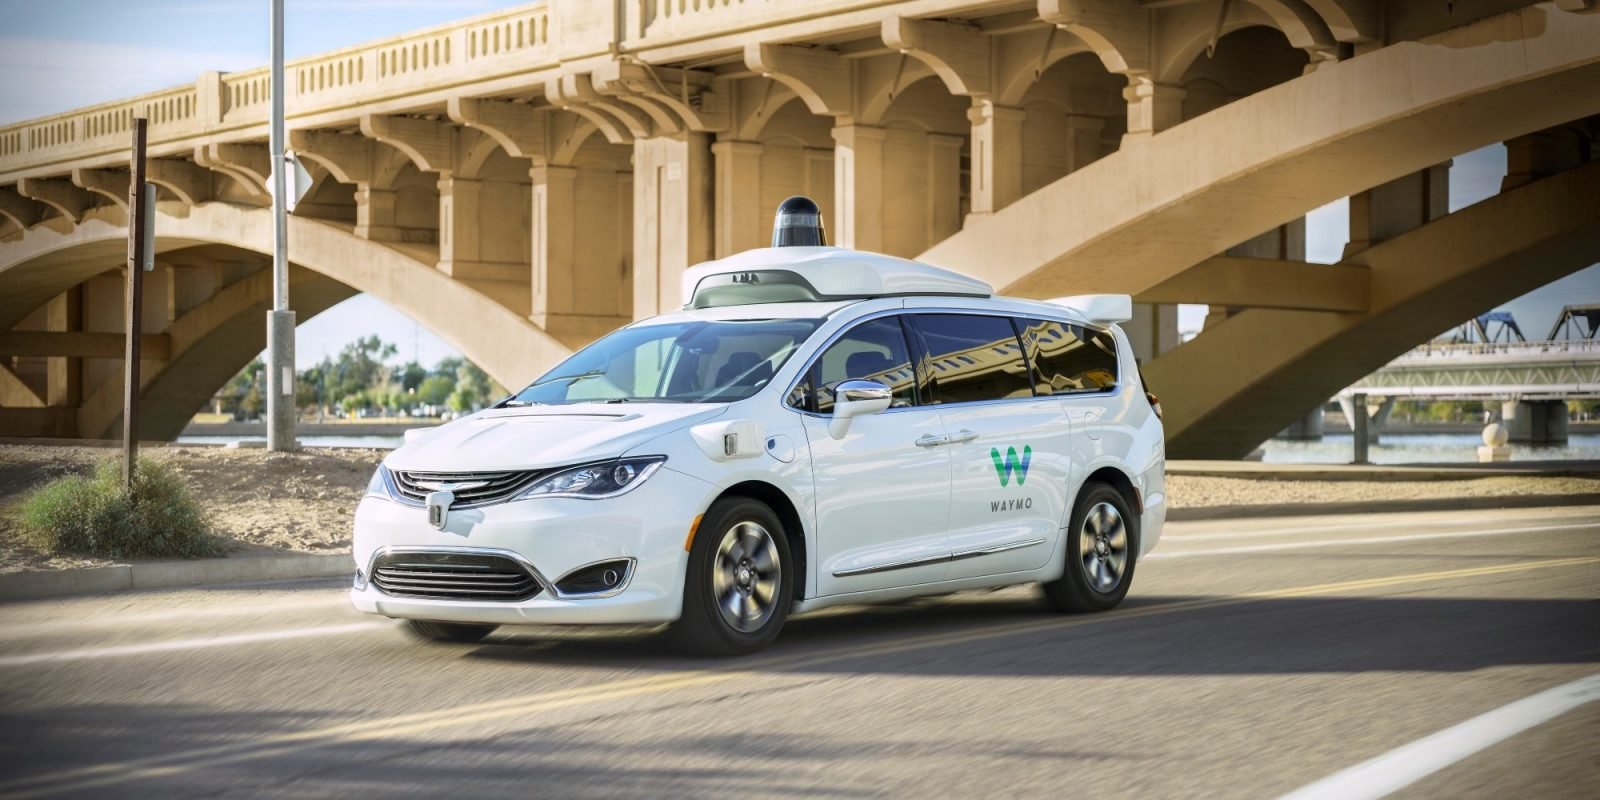 google, google waymo, waymo, waymo one, waymo taxi, waymo self driving car, waymo technote